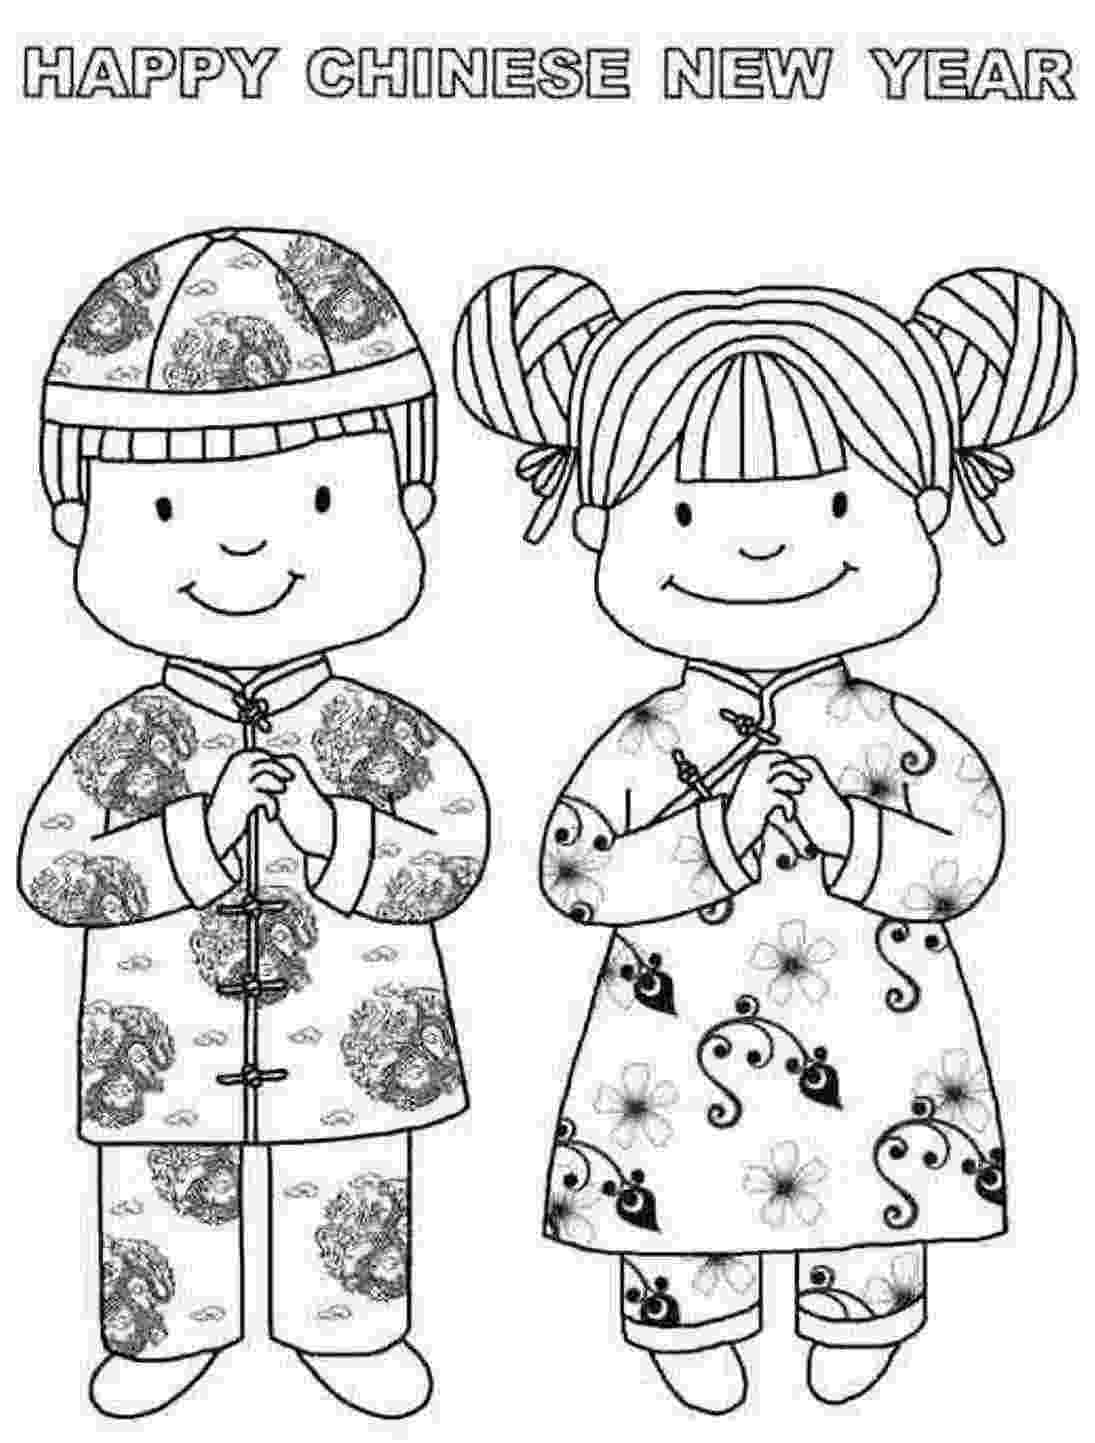 chinese new year coloring pages chinese new year snake coloring pages family holidaynet coloring pages year new chinese